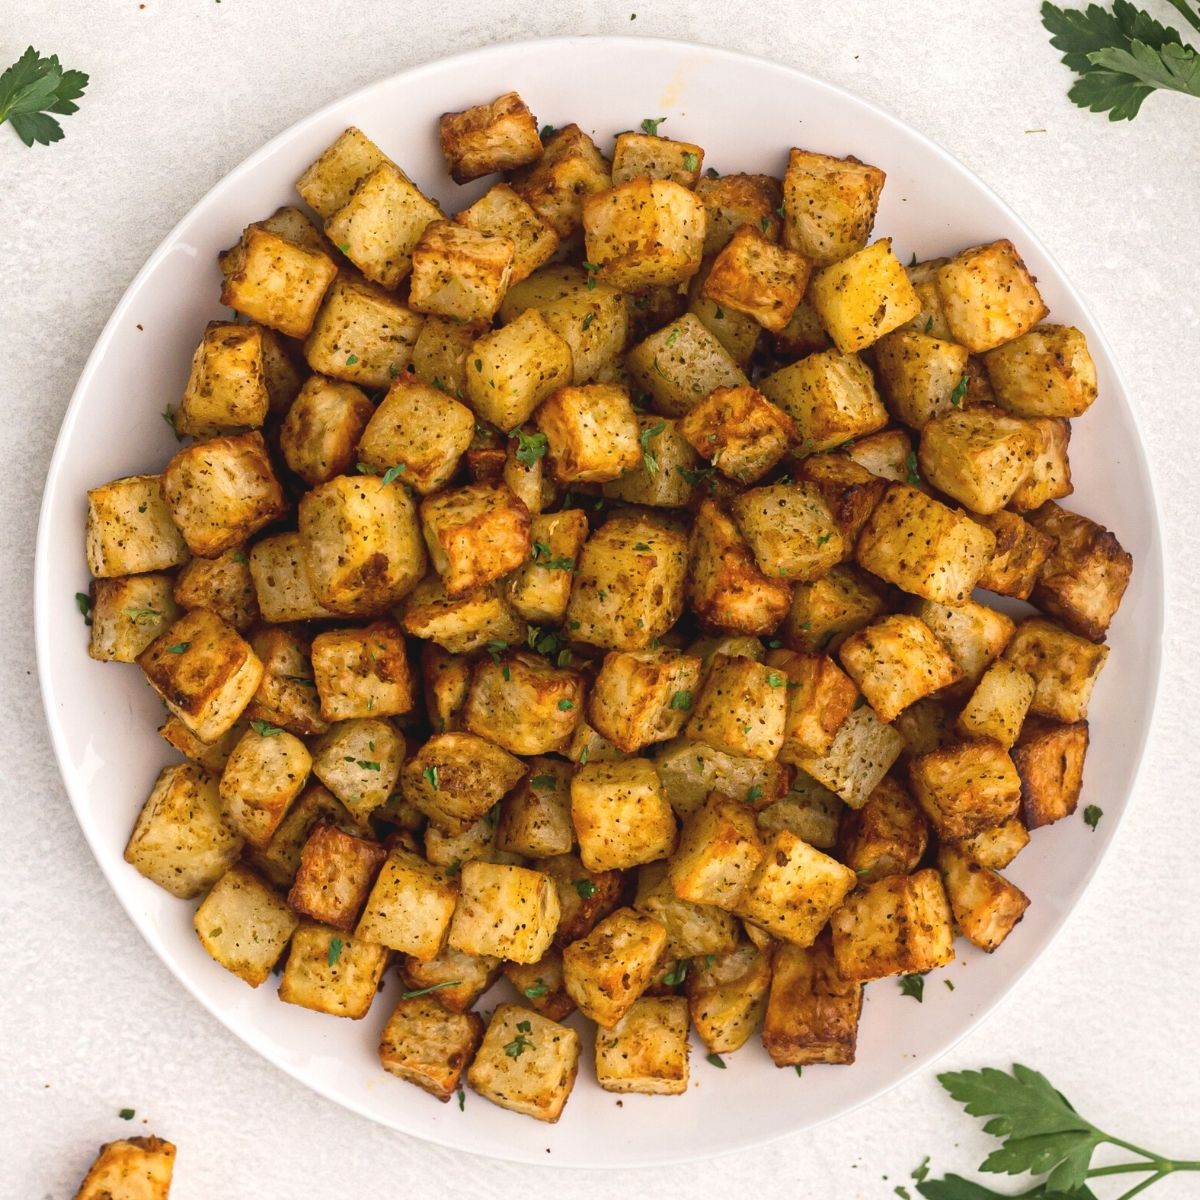 golden cubes of potatoes cut and cooked served on a white plate and garnished with parsley.